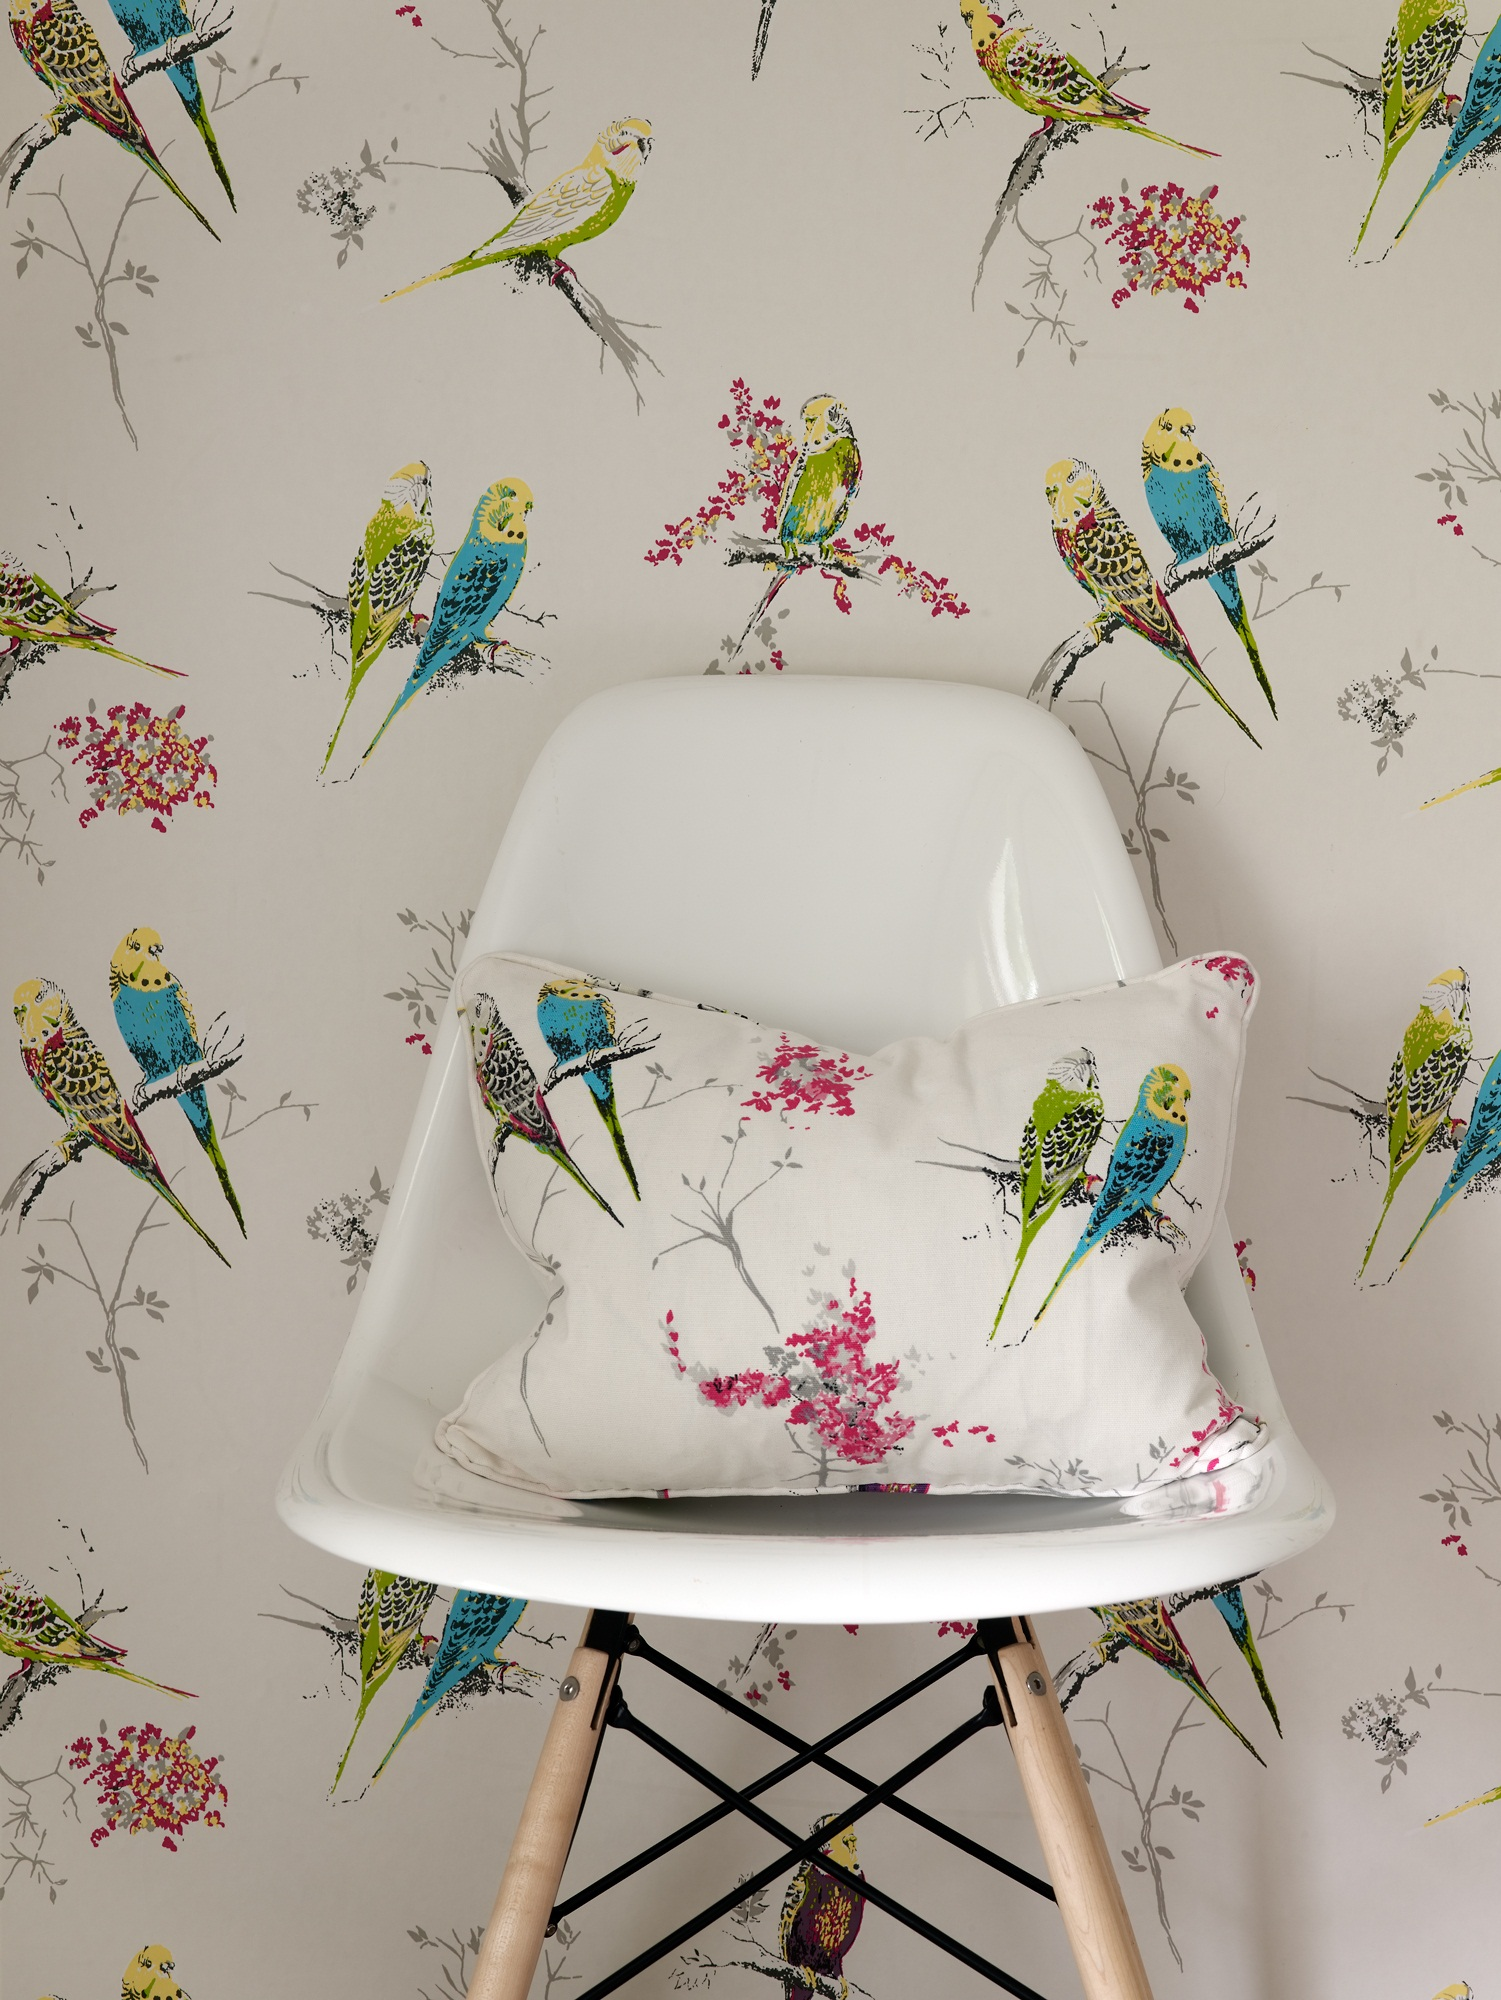 Chirpy-by-Blendworth-wallpaper-wp560115